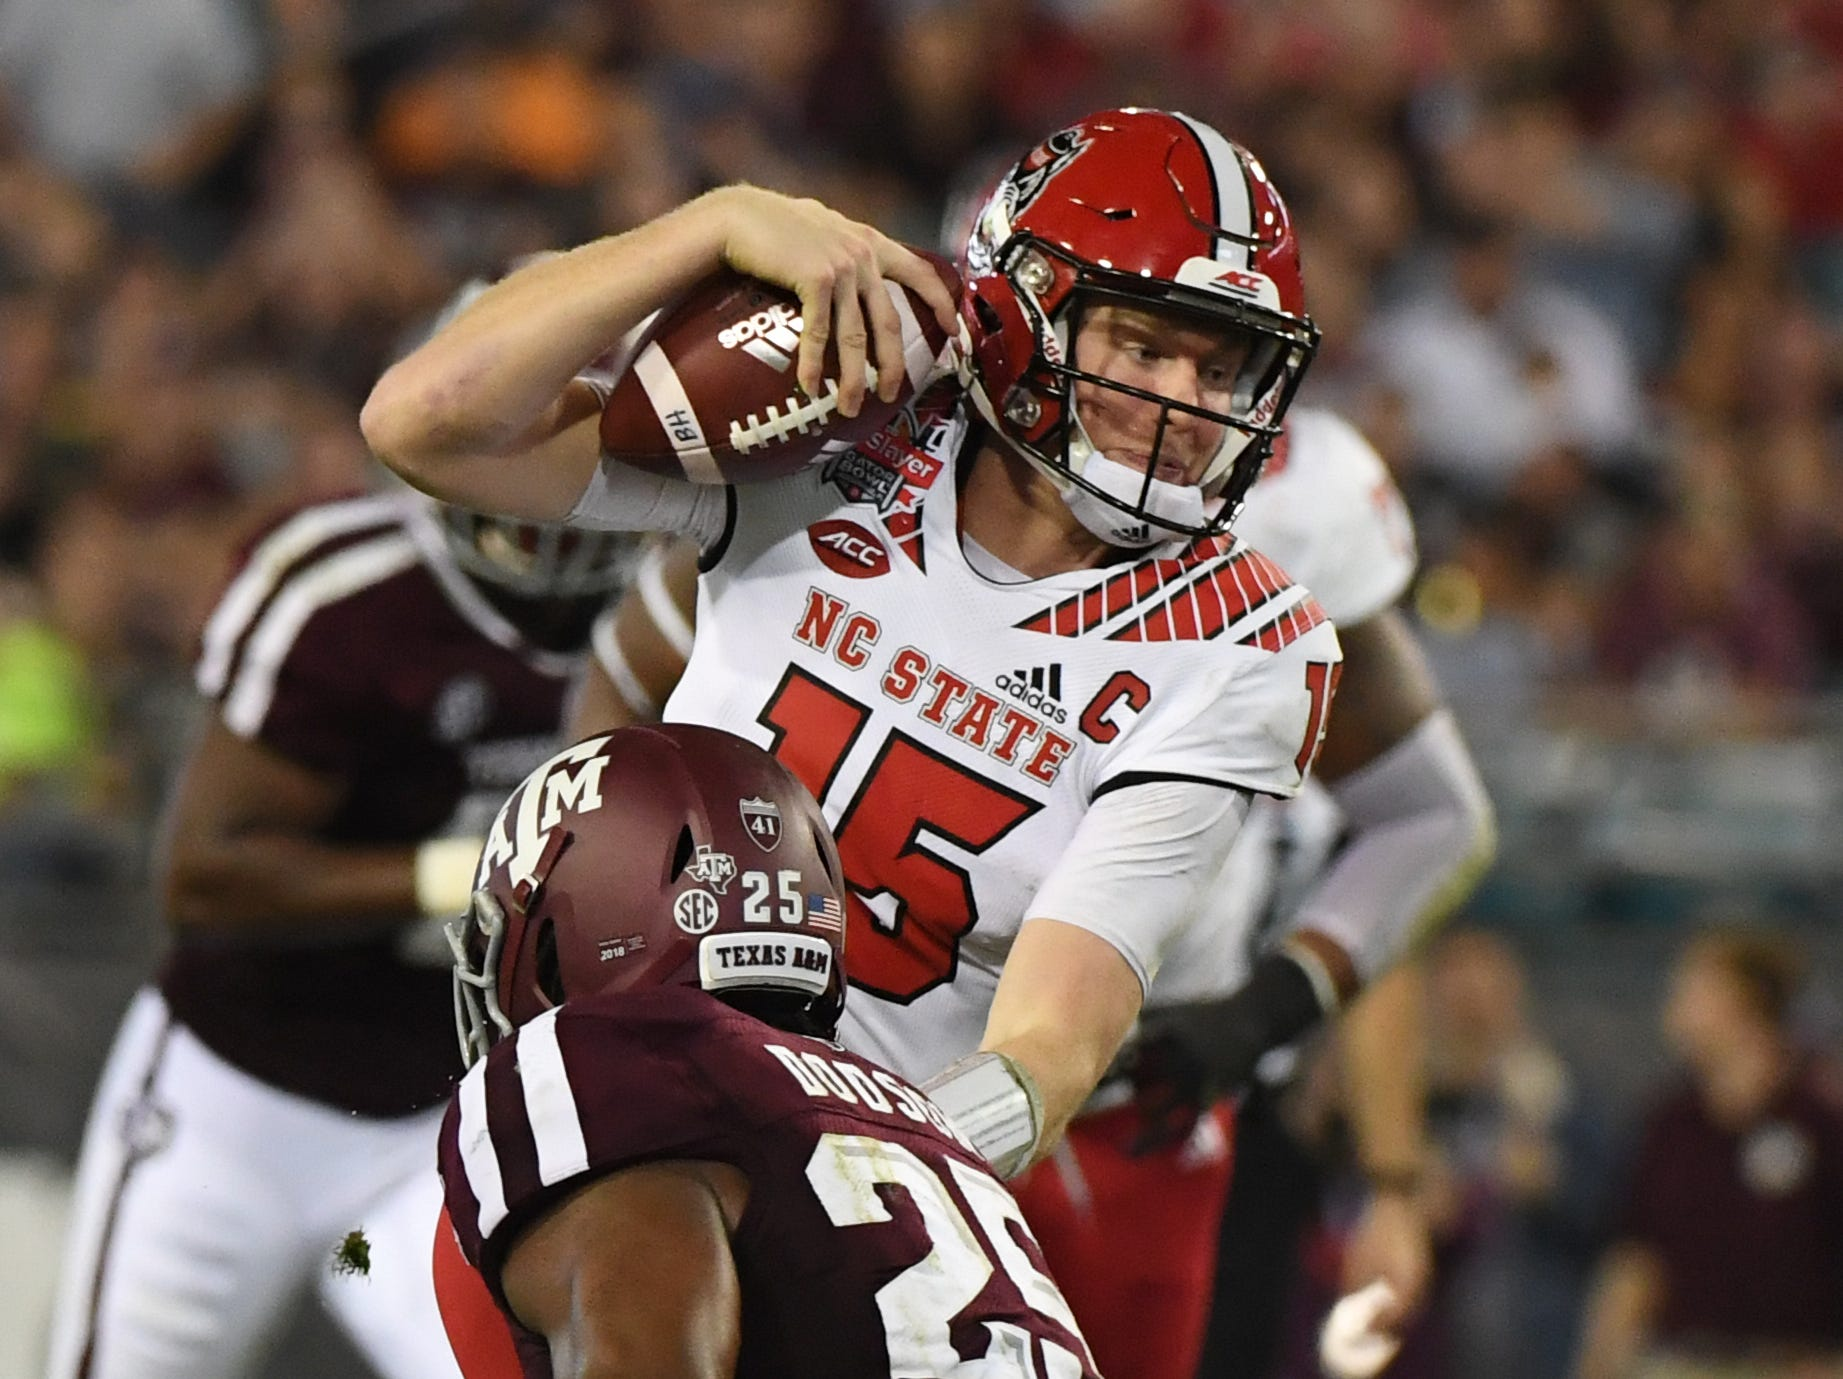 North Carolina State Wolfpack quarterback Ryan Finley (15) carries the ball against Texas A&M Aggies linebacker Tyrel Dodson (25) during the second quarter of the Gator Bowl.